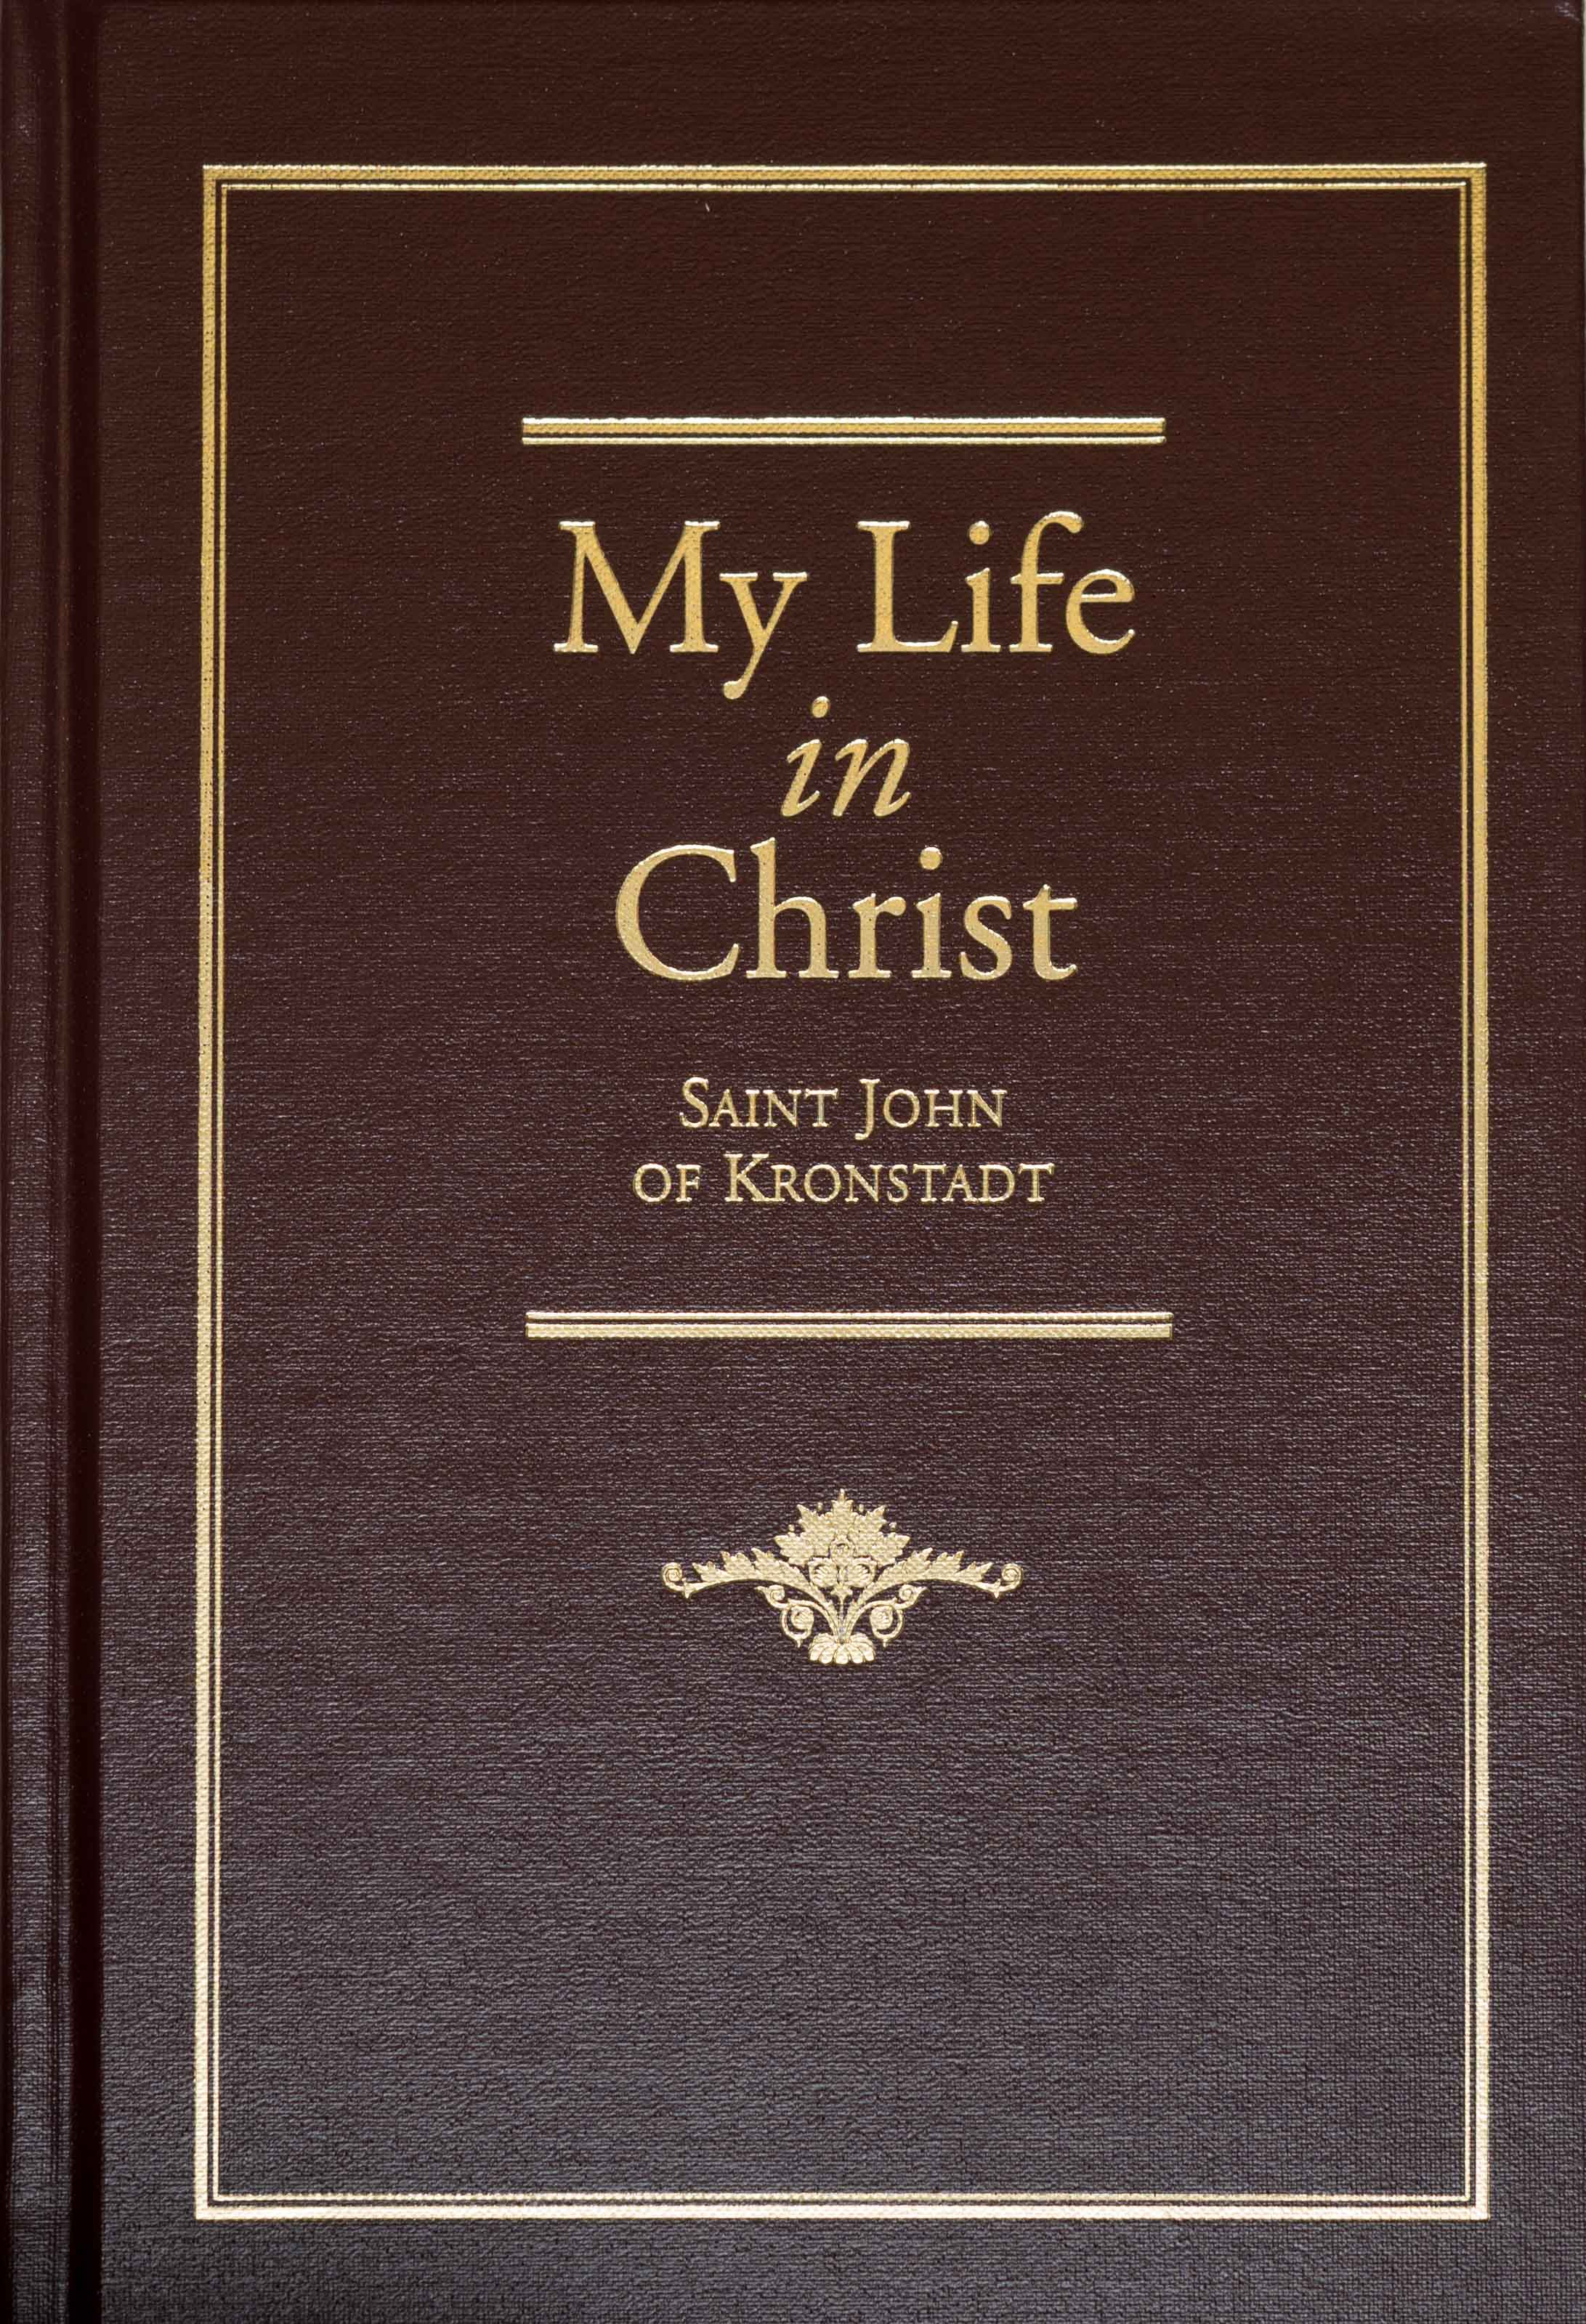 My Life in Christ: Saint John of Kronstadt.